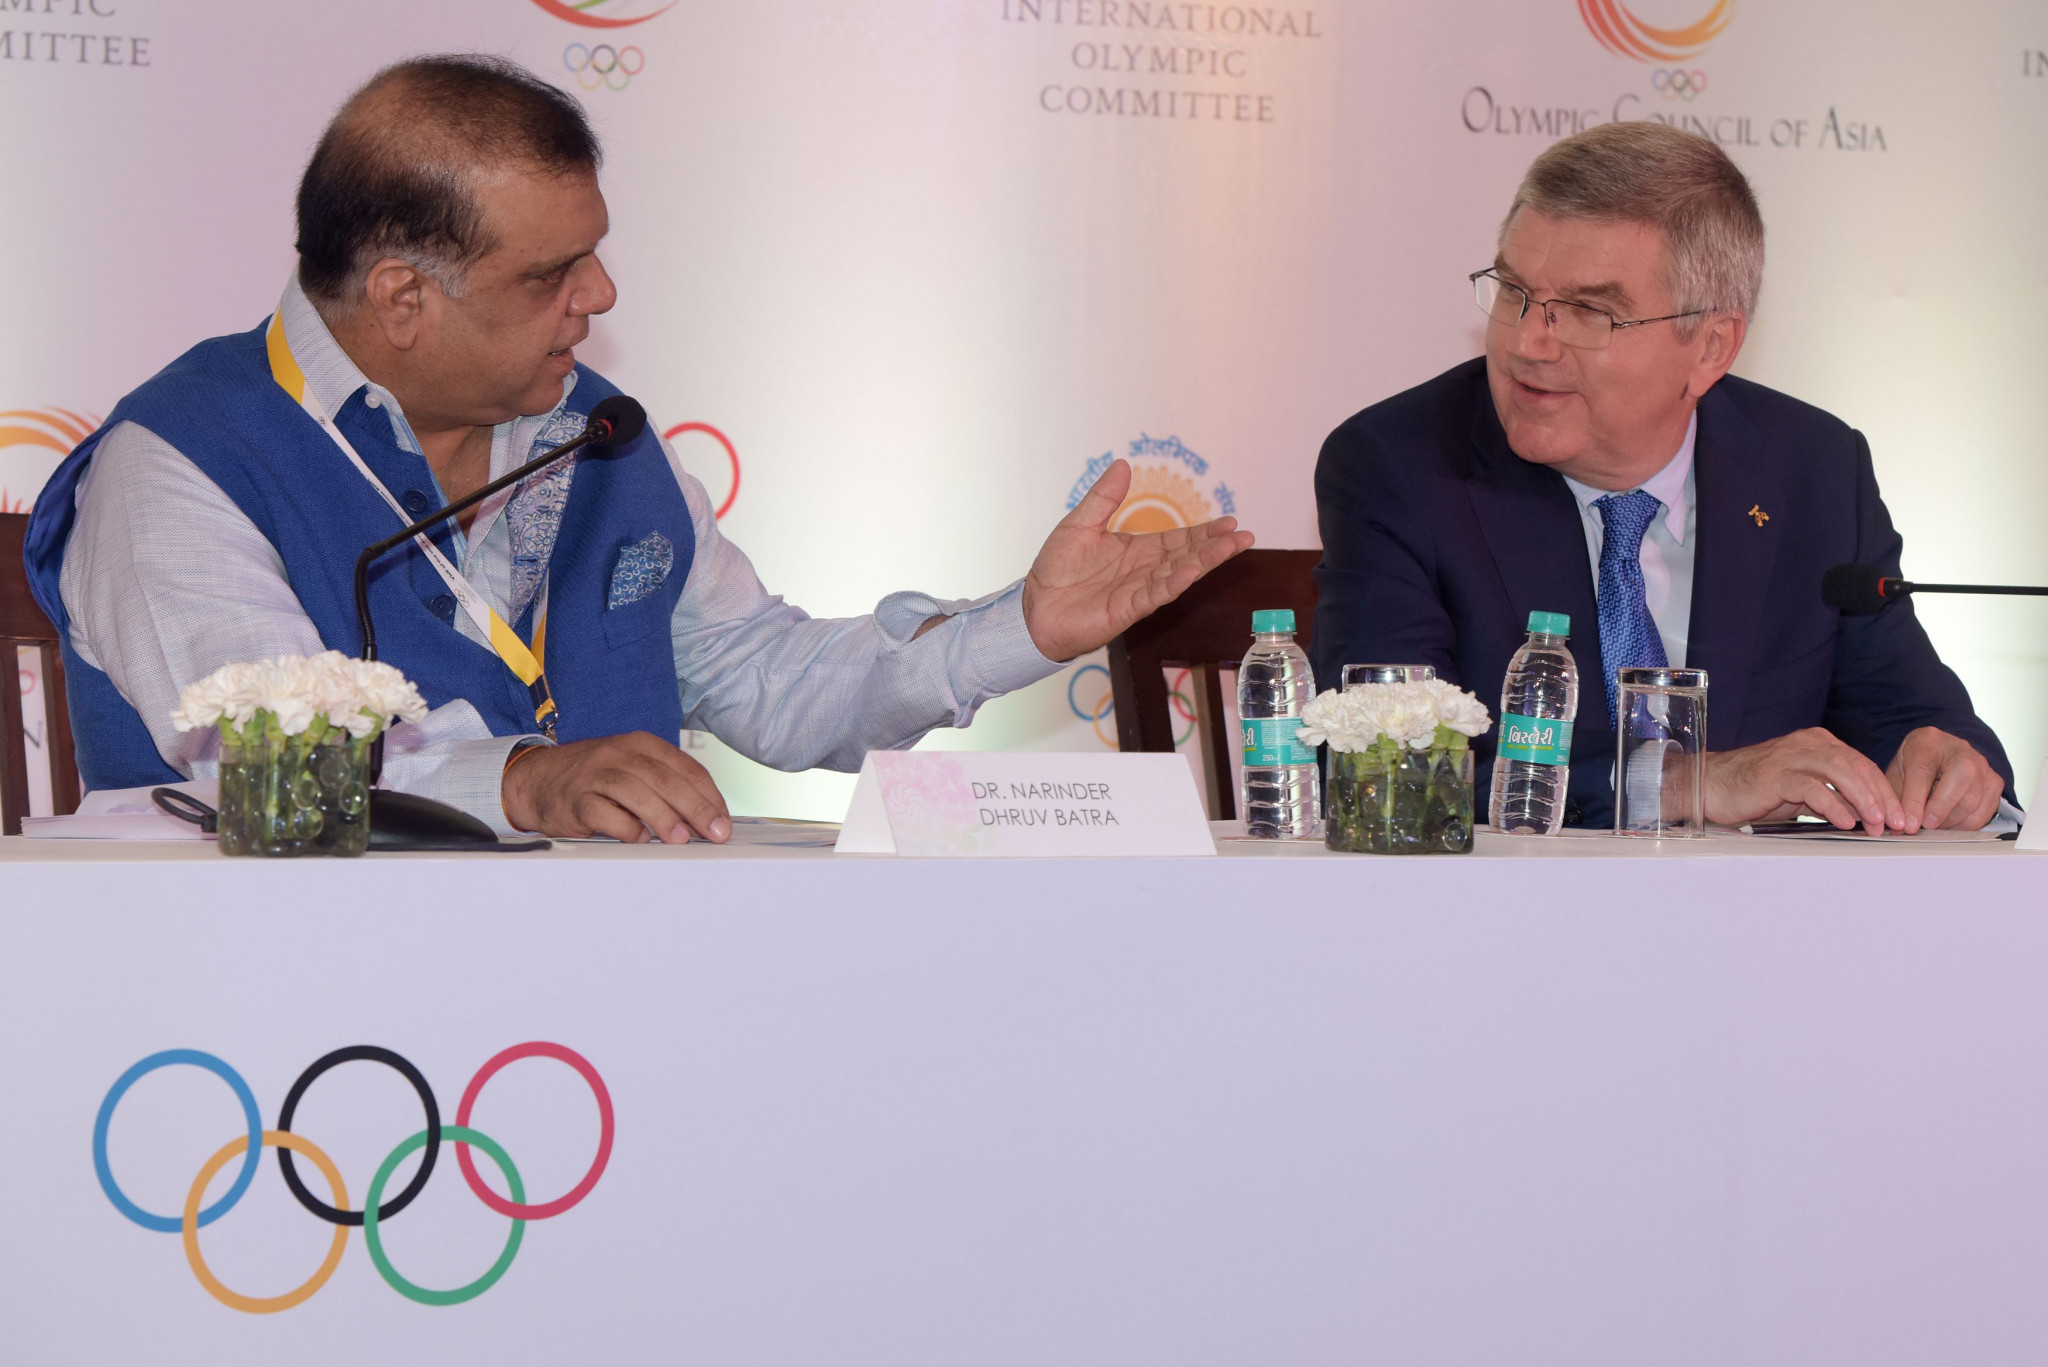 The IOA President became a member of the IOC earlier this year ©Getty Images